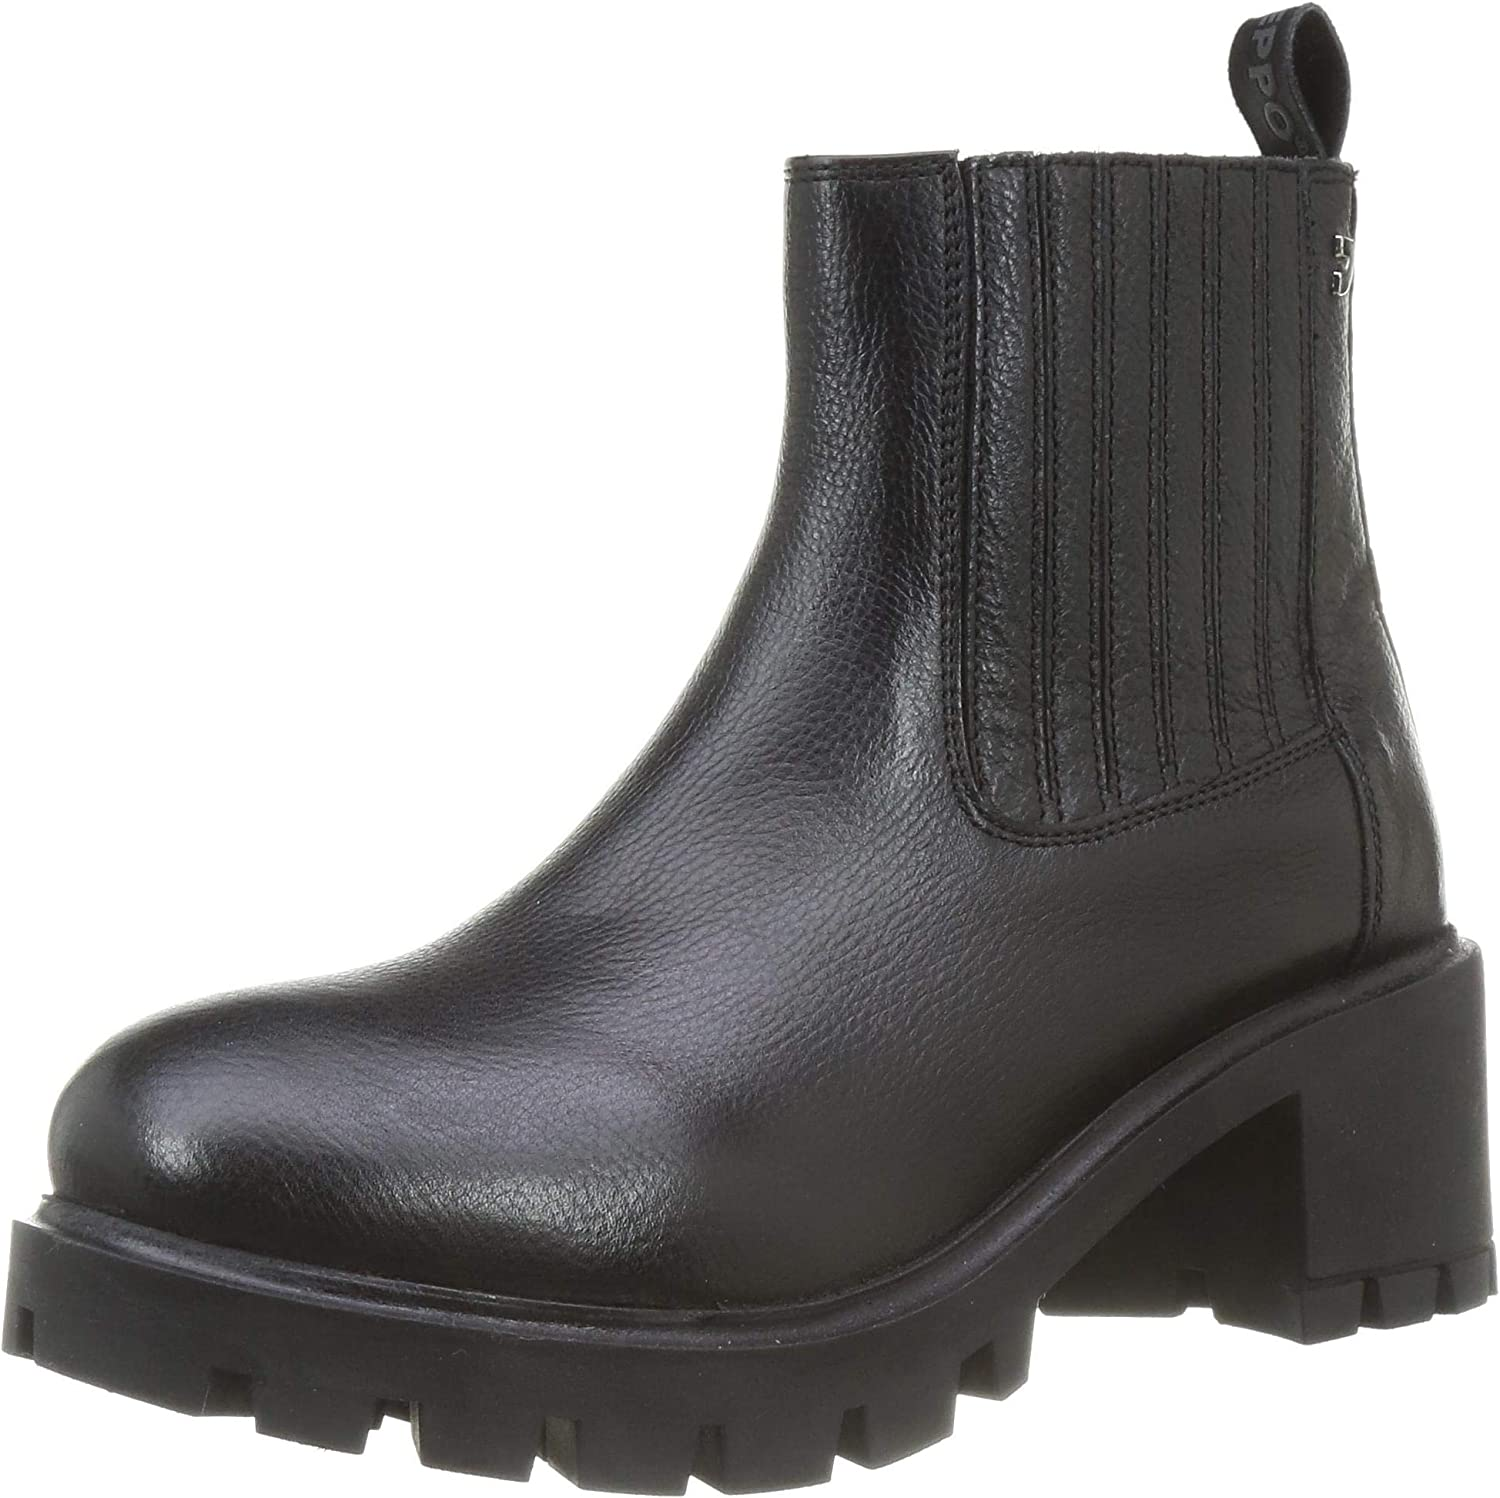 GIOSEPPO Women's Chelsea Boots National products Special Campaign Fashion